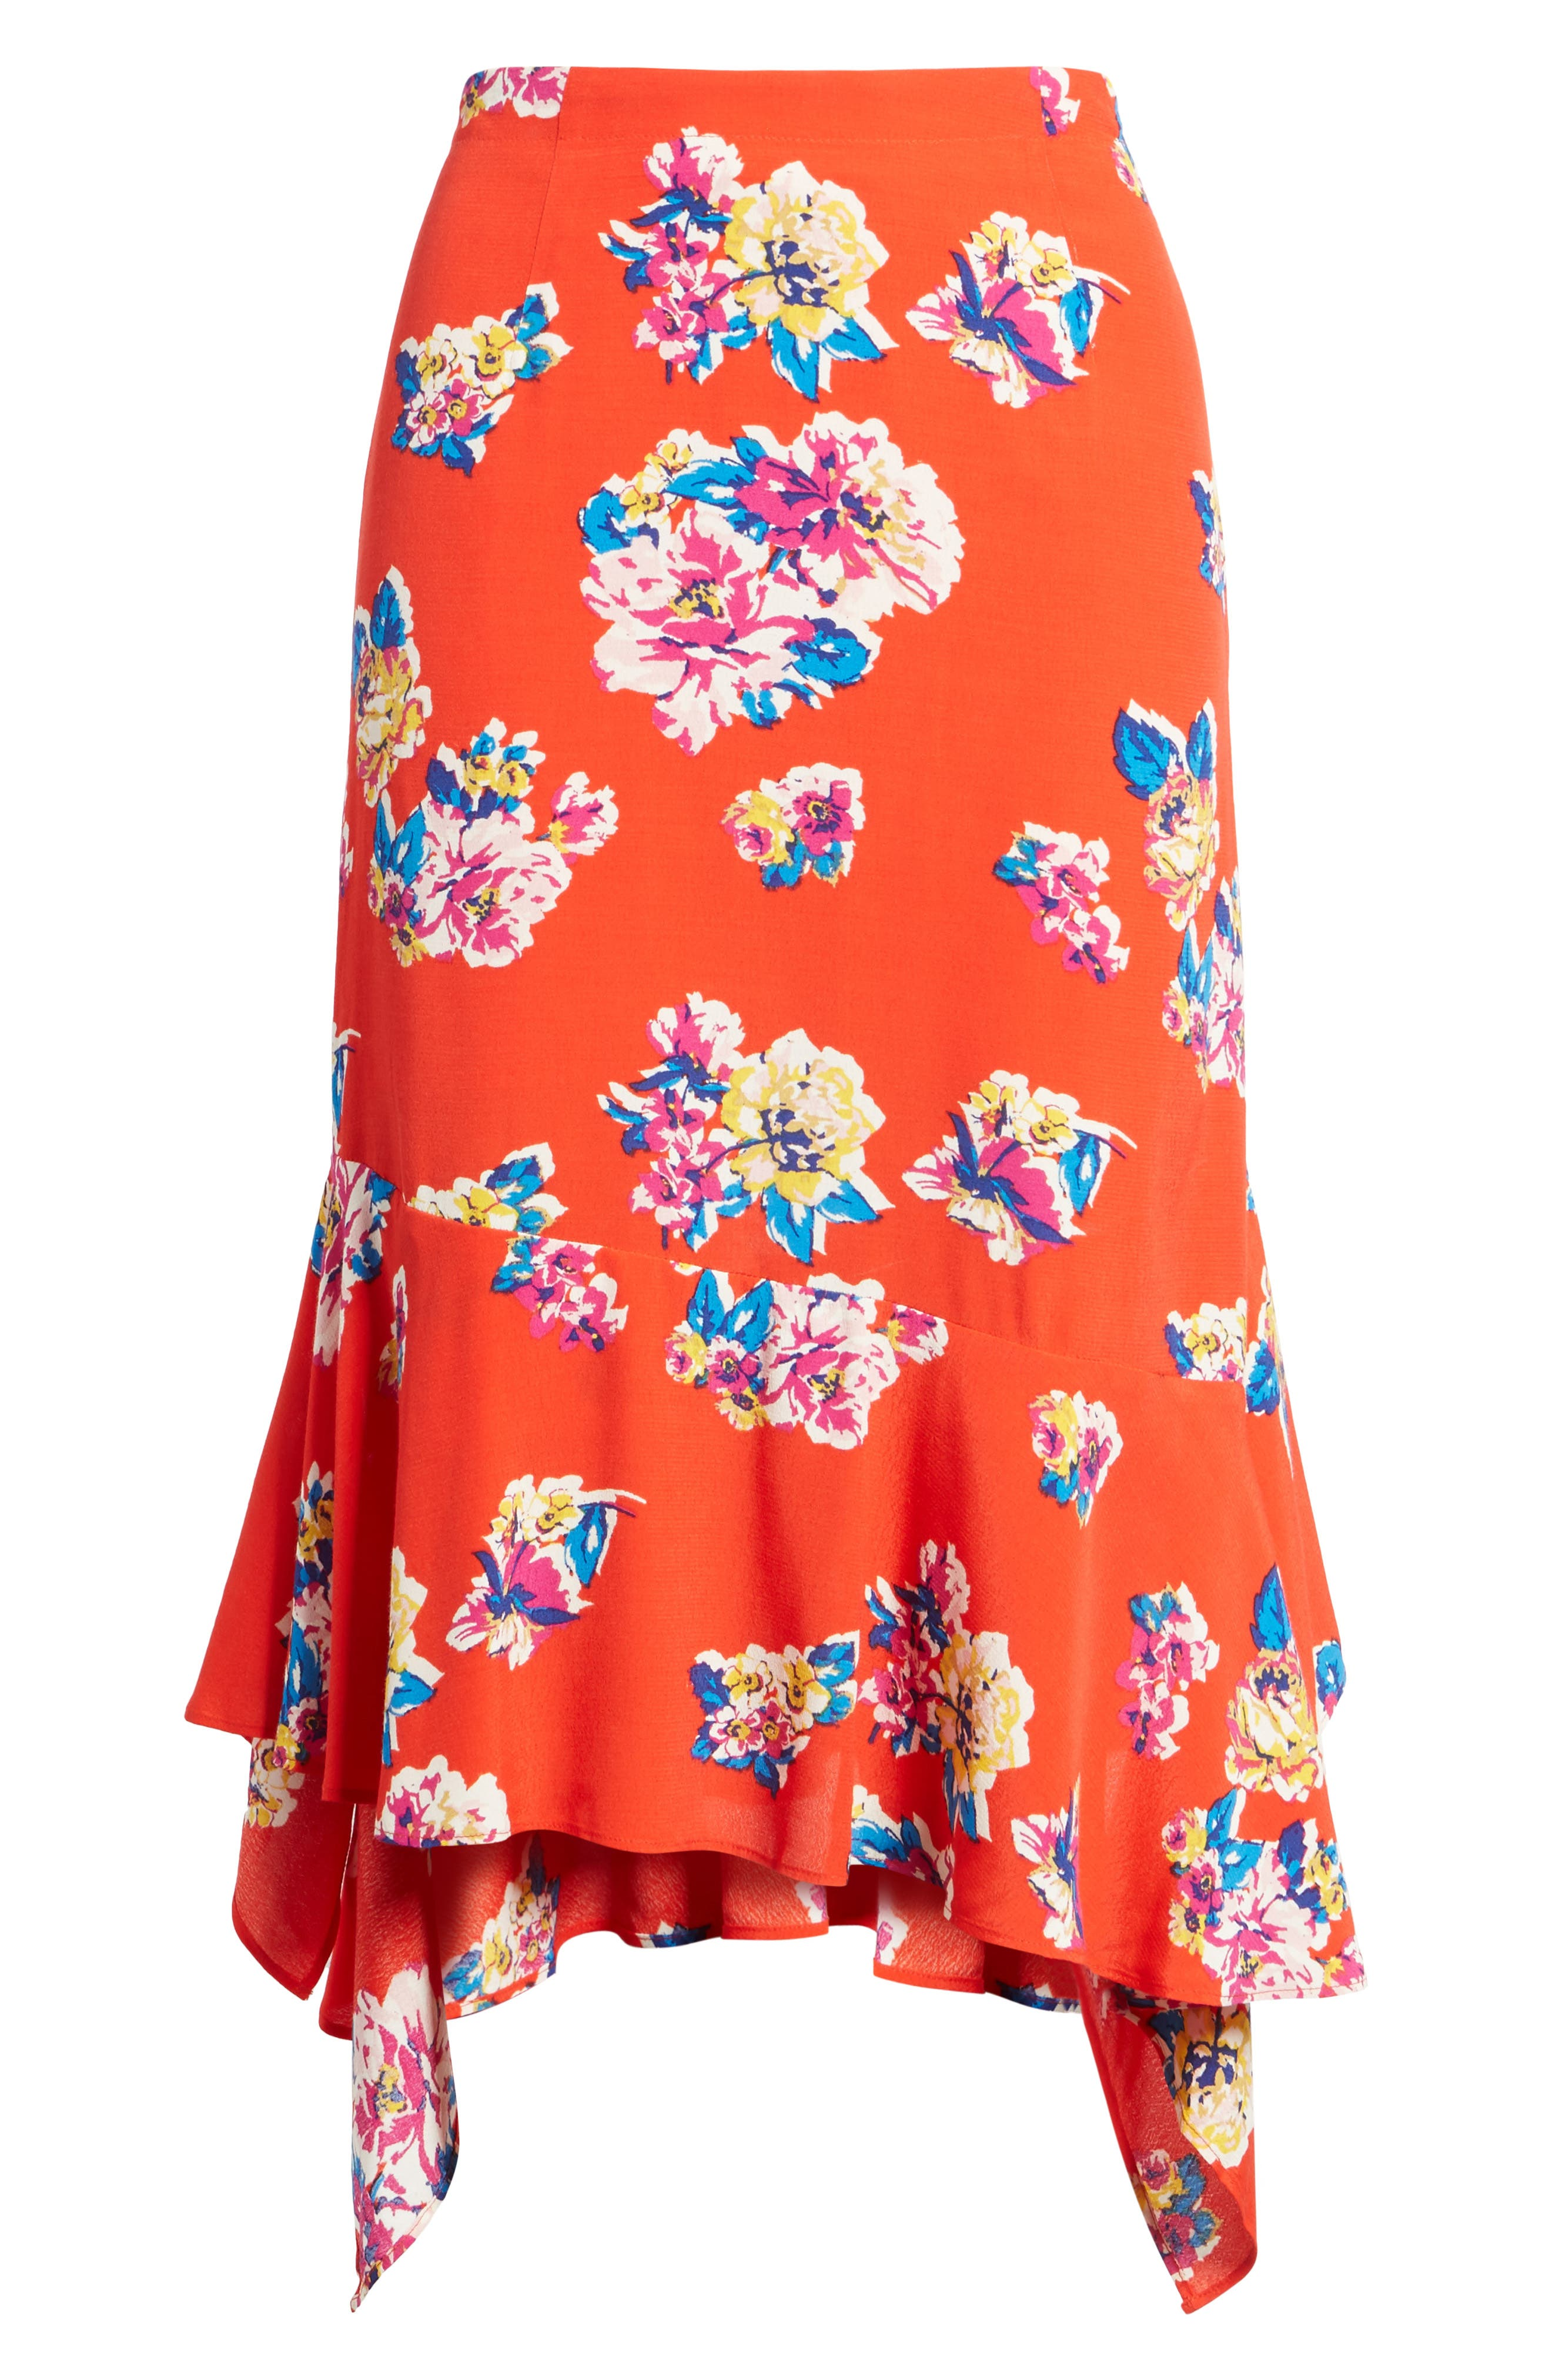 Floral Ruffle Hem Skirt,                             Alternate thumbnail 6, color,                             Red Field Bold Bloom